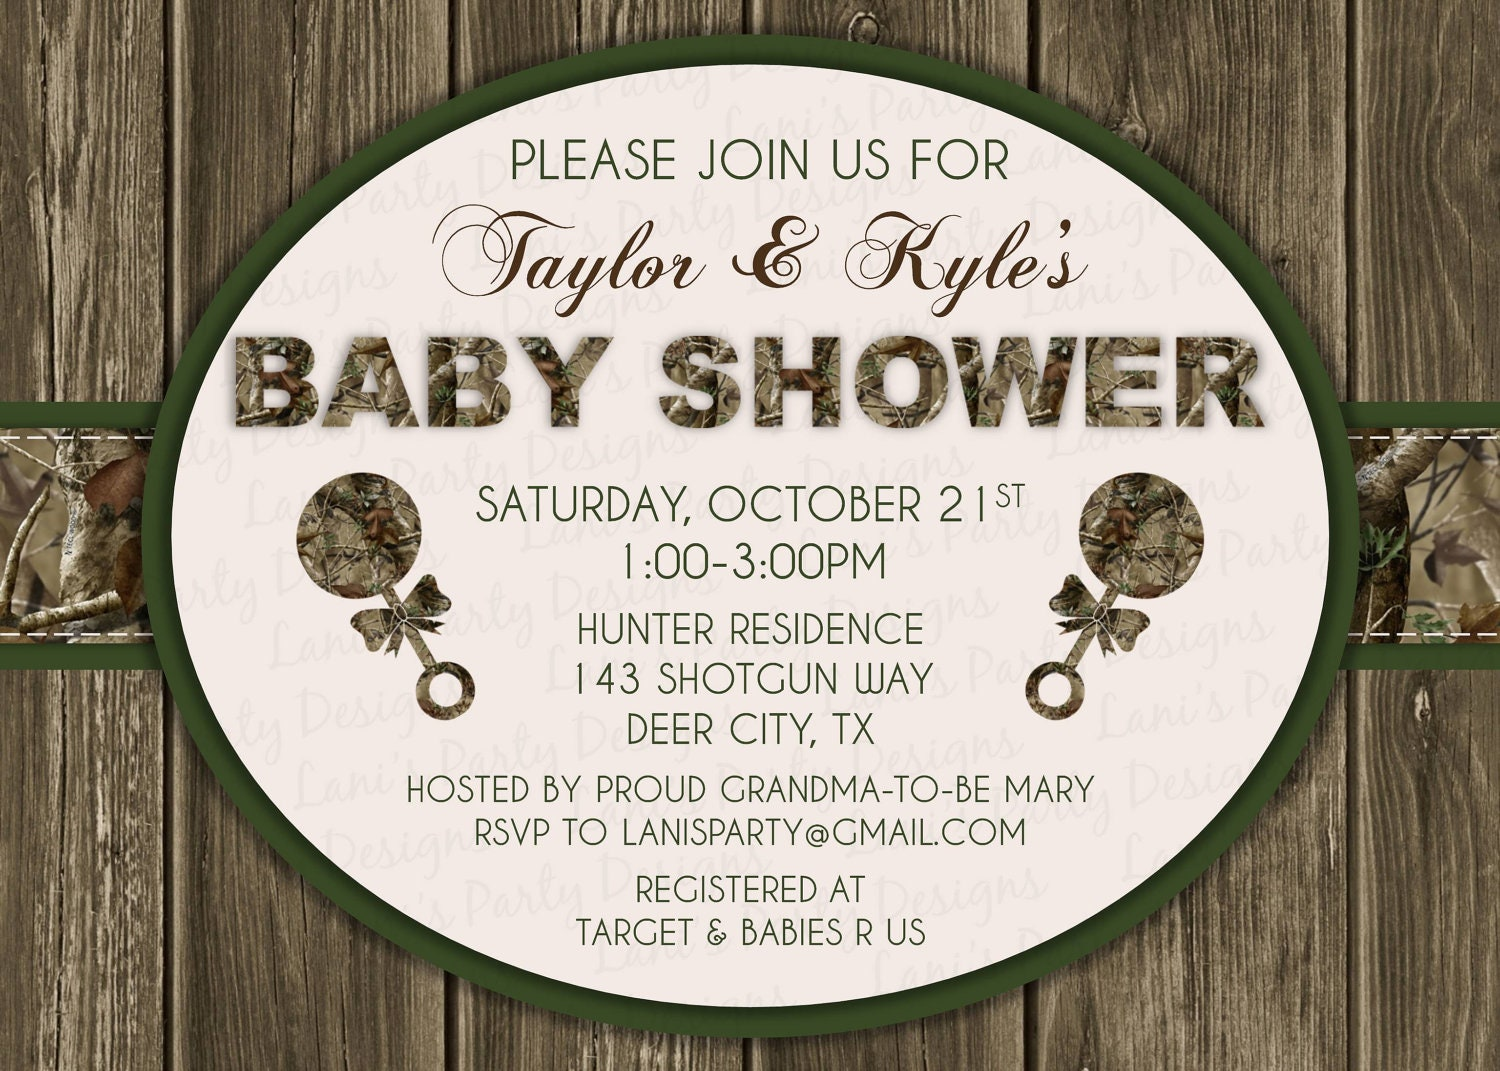 Pink Camo Baby Shower Invitations is great invitations sample